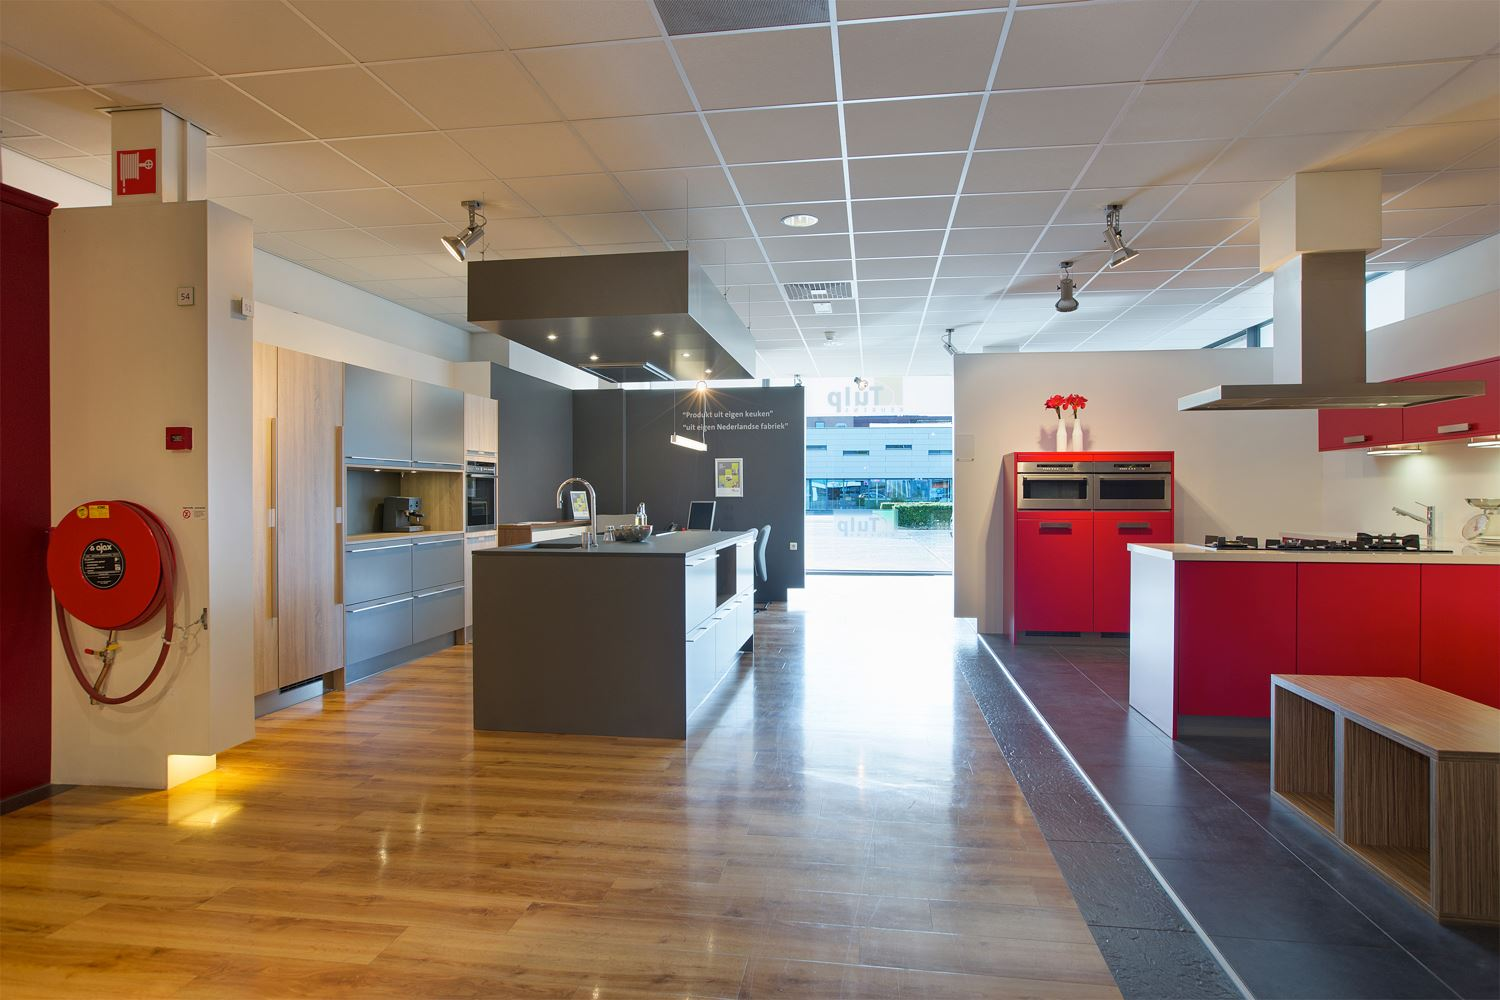 Investment heerhugowaard search investments for sale: j.j.p.